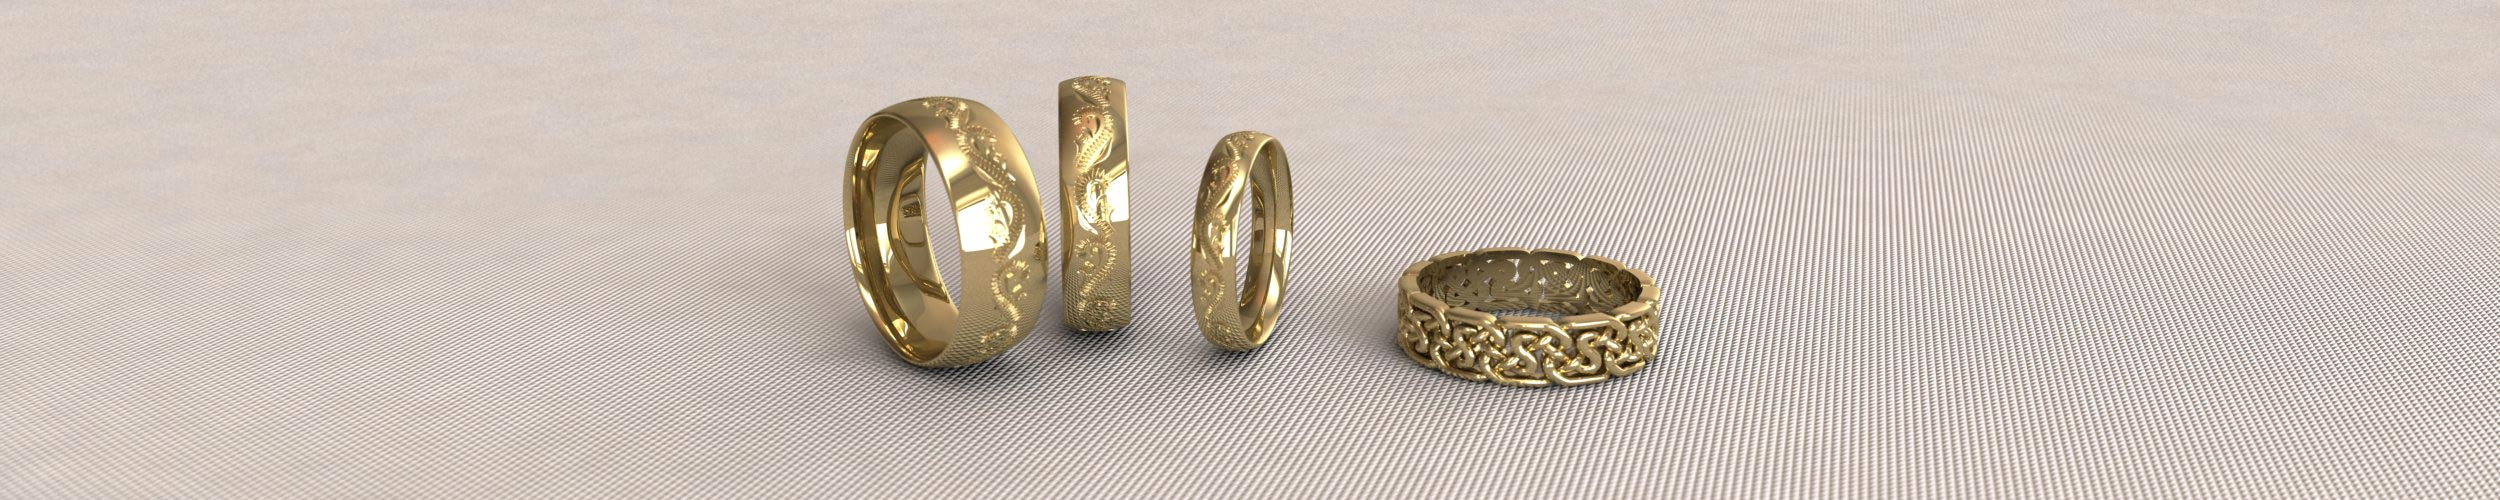 Yellow Gold Patterned Wedding Rings